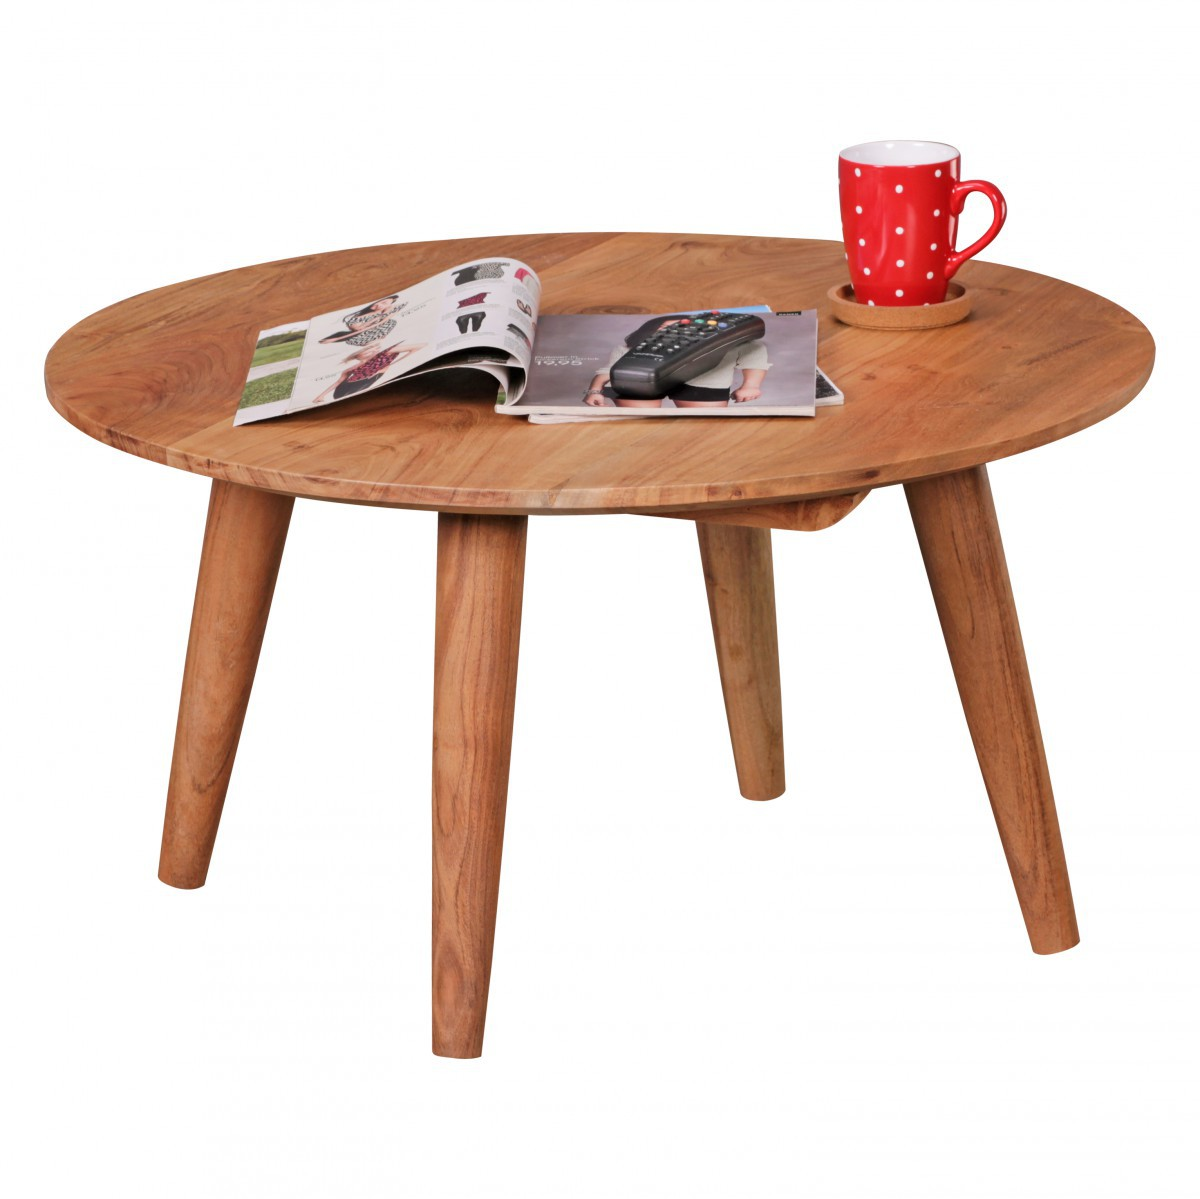 Finebuy table basse en bois massif acacia table basse - Table basse en acacia ...